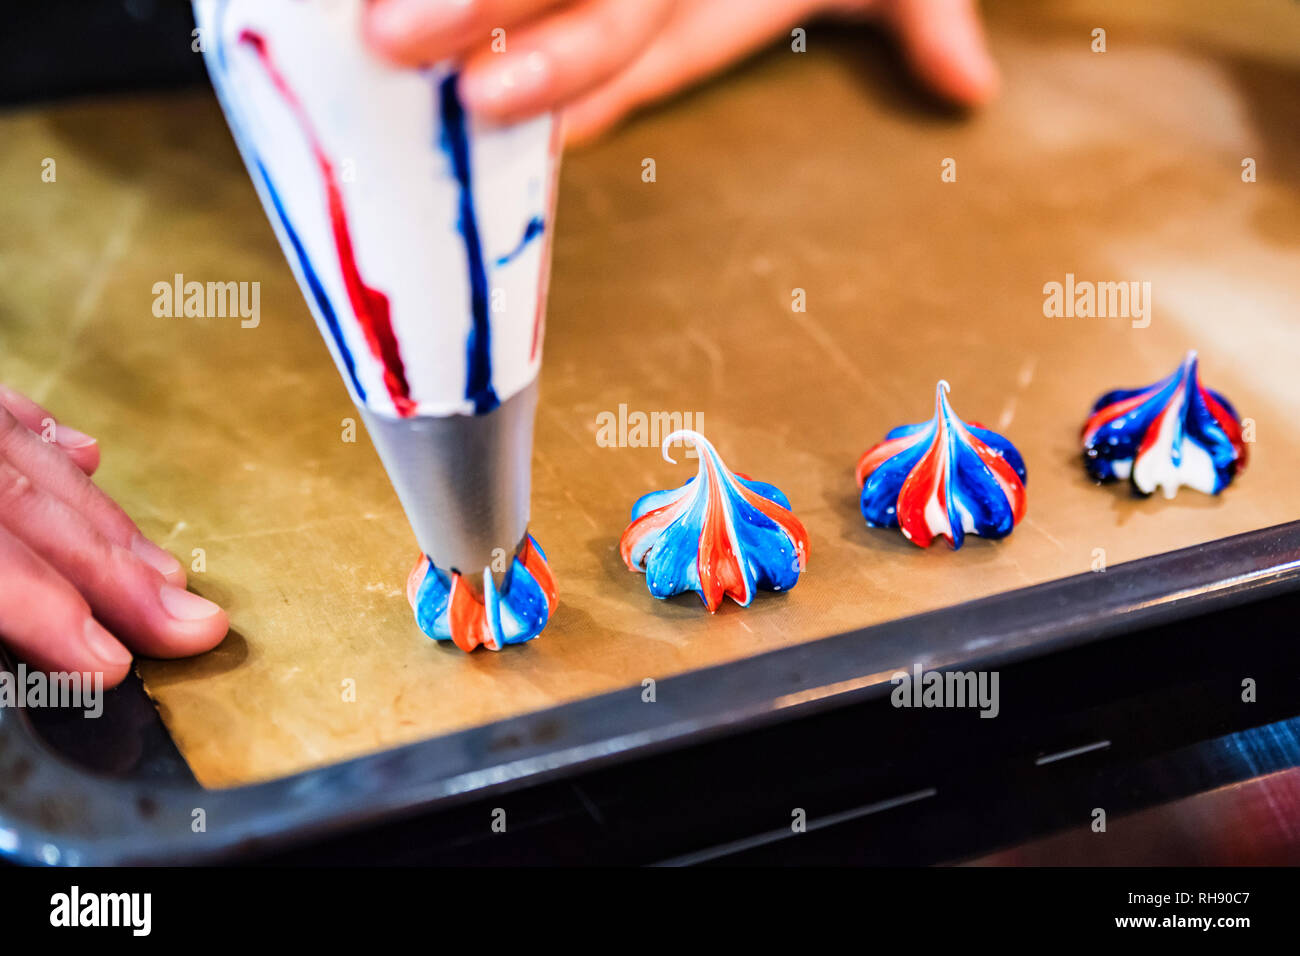 Close up baking pan with small meringue cakes made with pastry bag - Stock Image